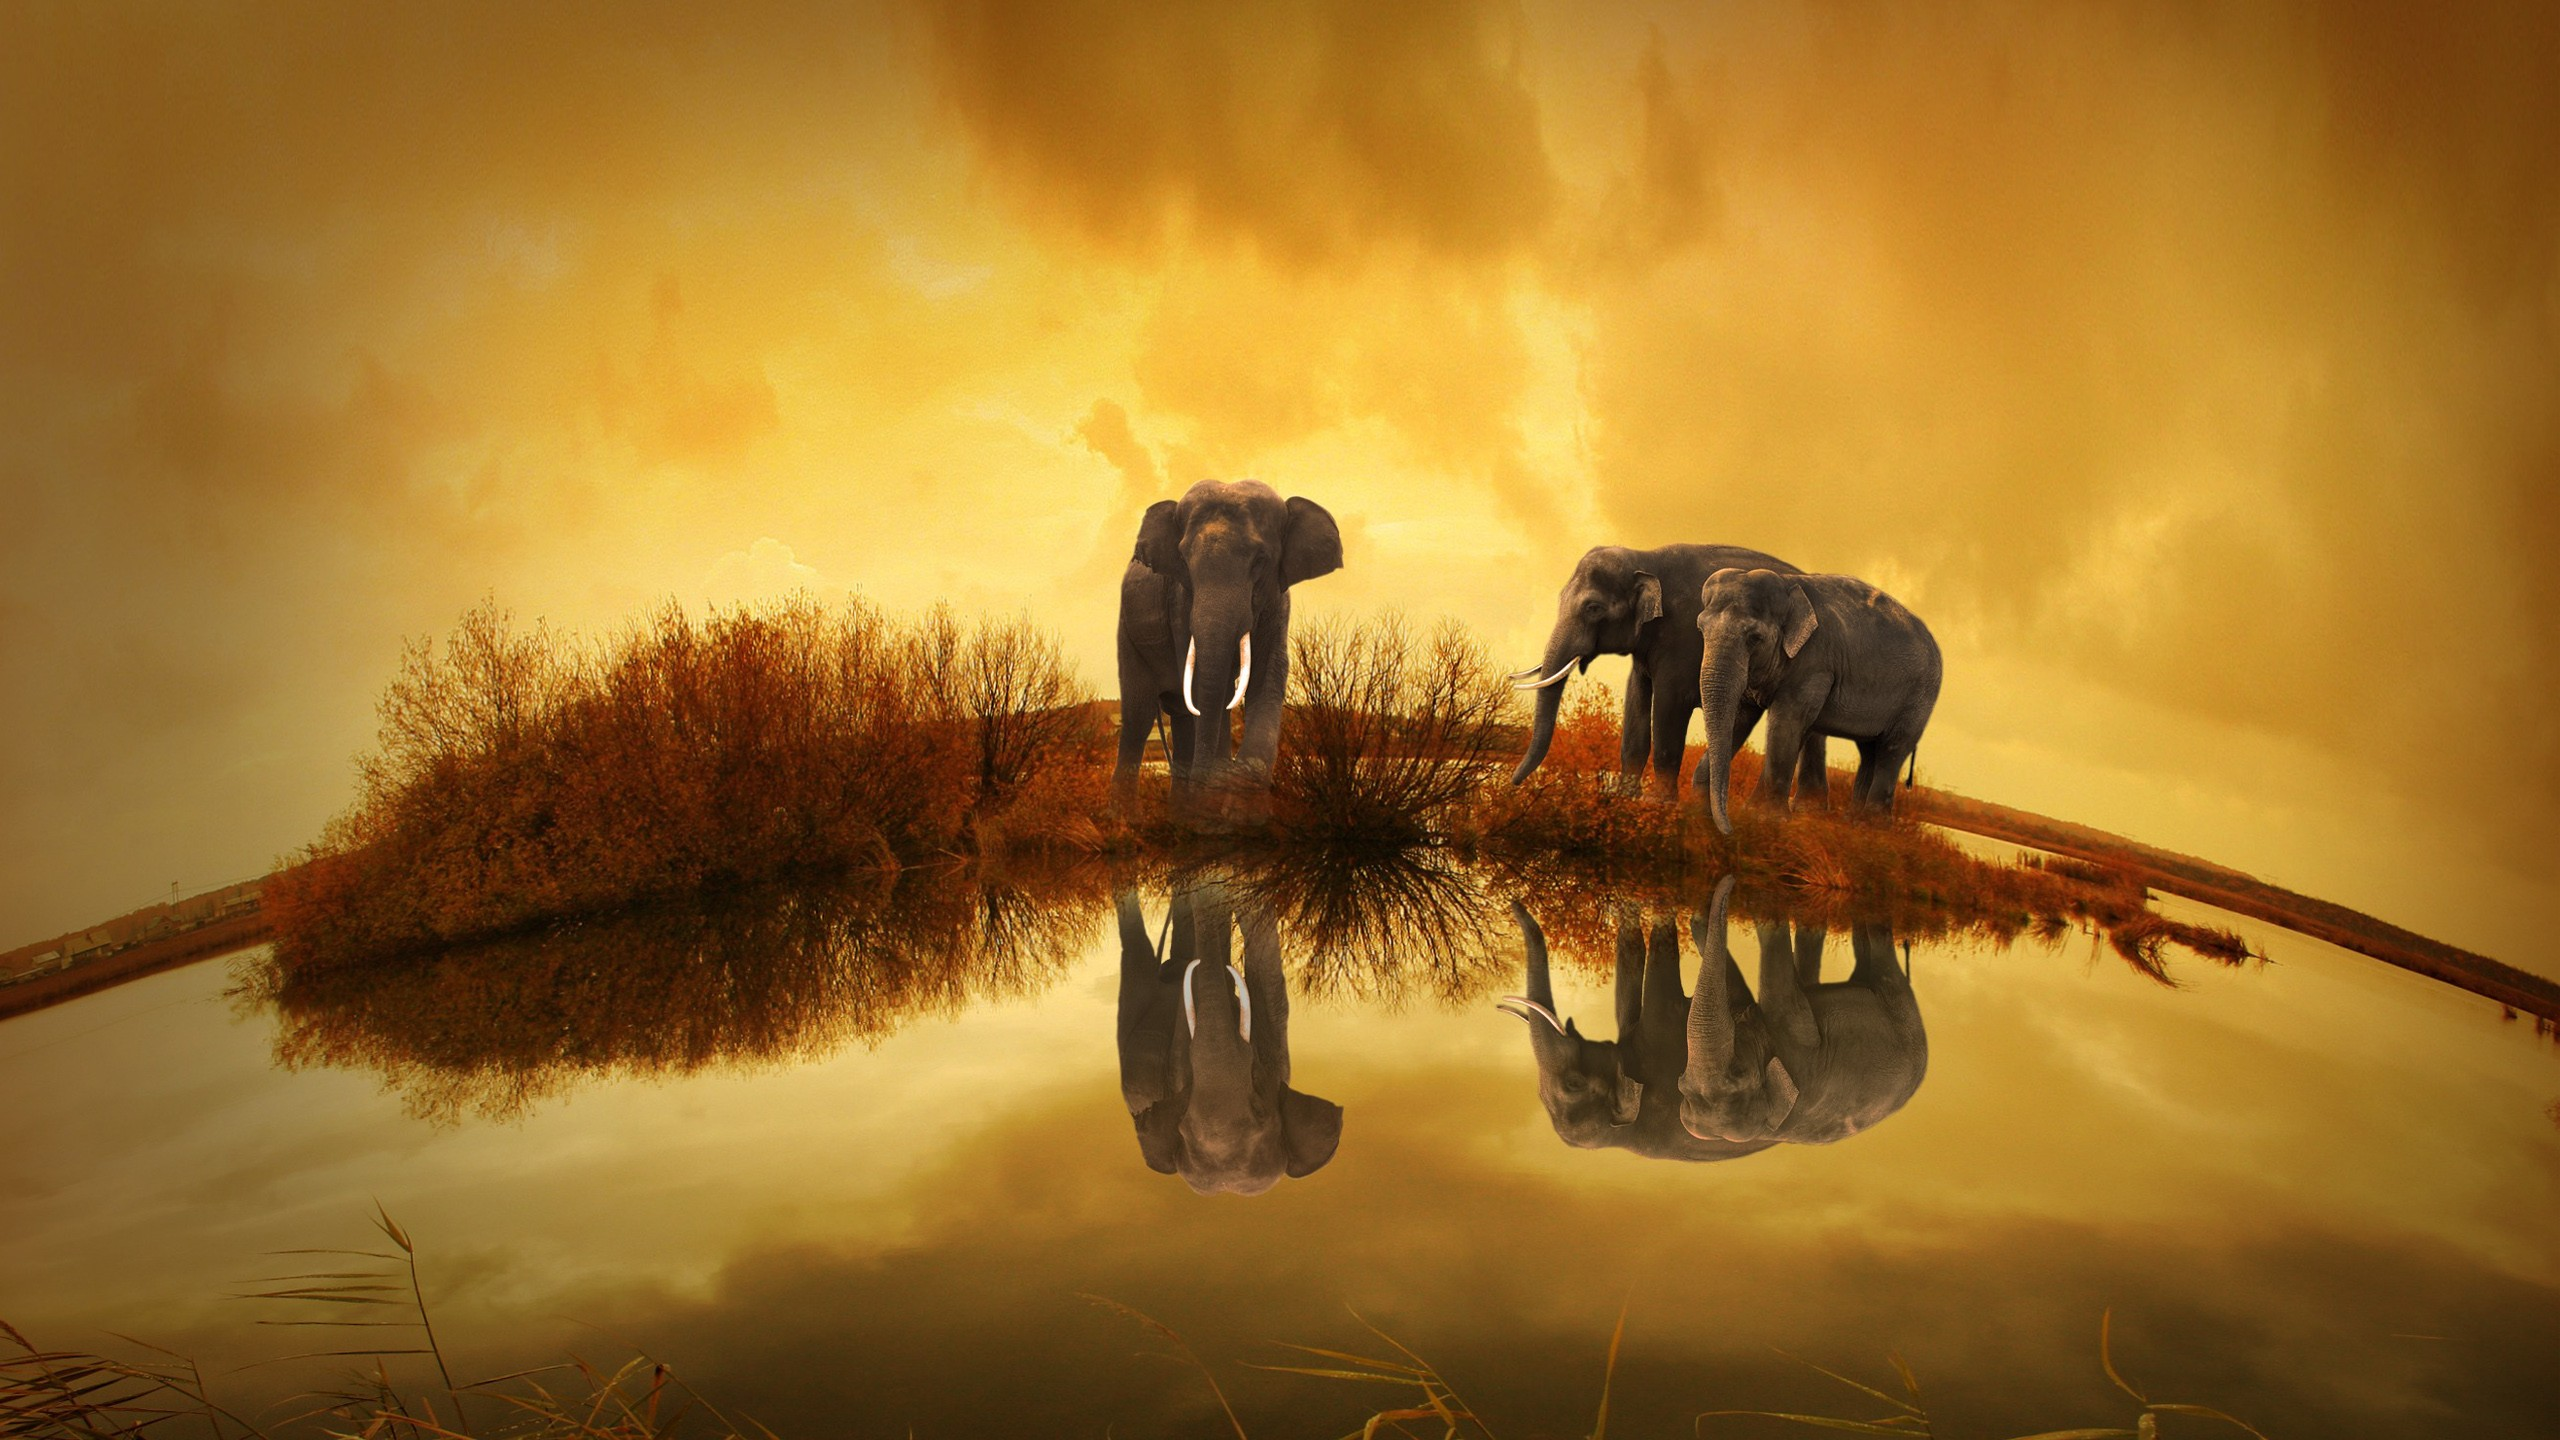 Cute Hd Wallpapers 1080p Thailand Elephants Wallpapers Hd Wallpapers Id 16694